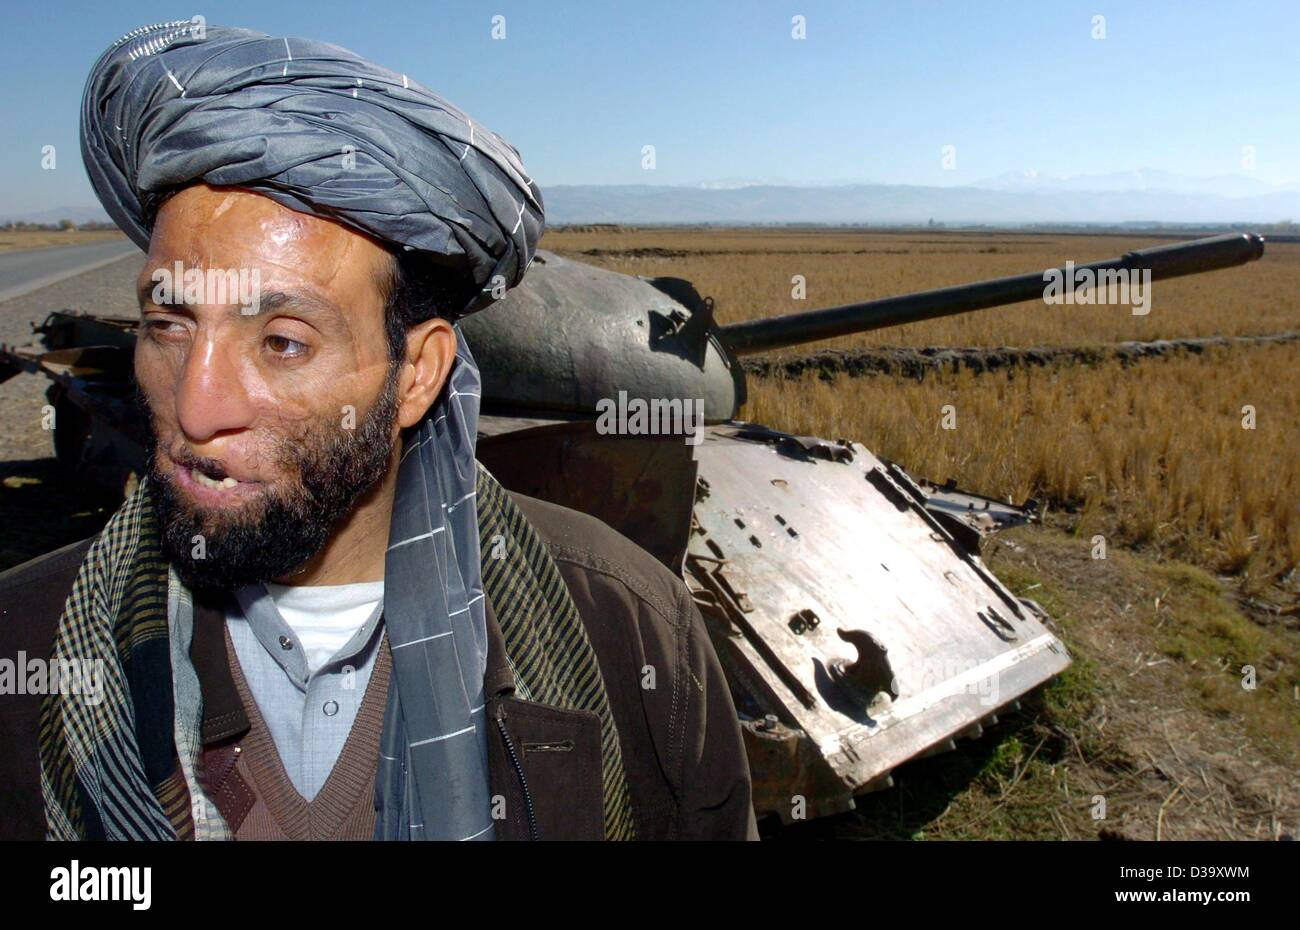 (dpa) - An Afghan victim of war, the 40-year-old Ex-Mujahideen Dadguhl Delawan, stands in front of a Russian tank - Stock Image